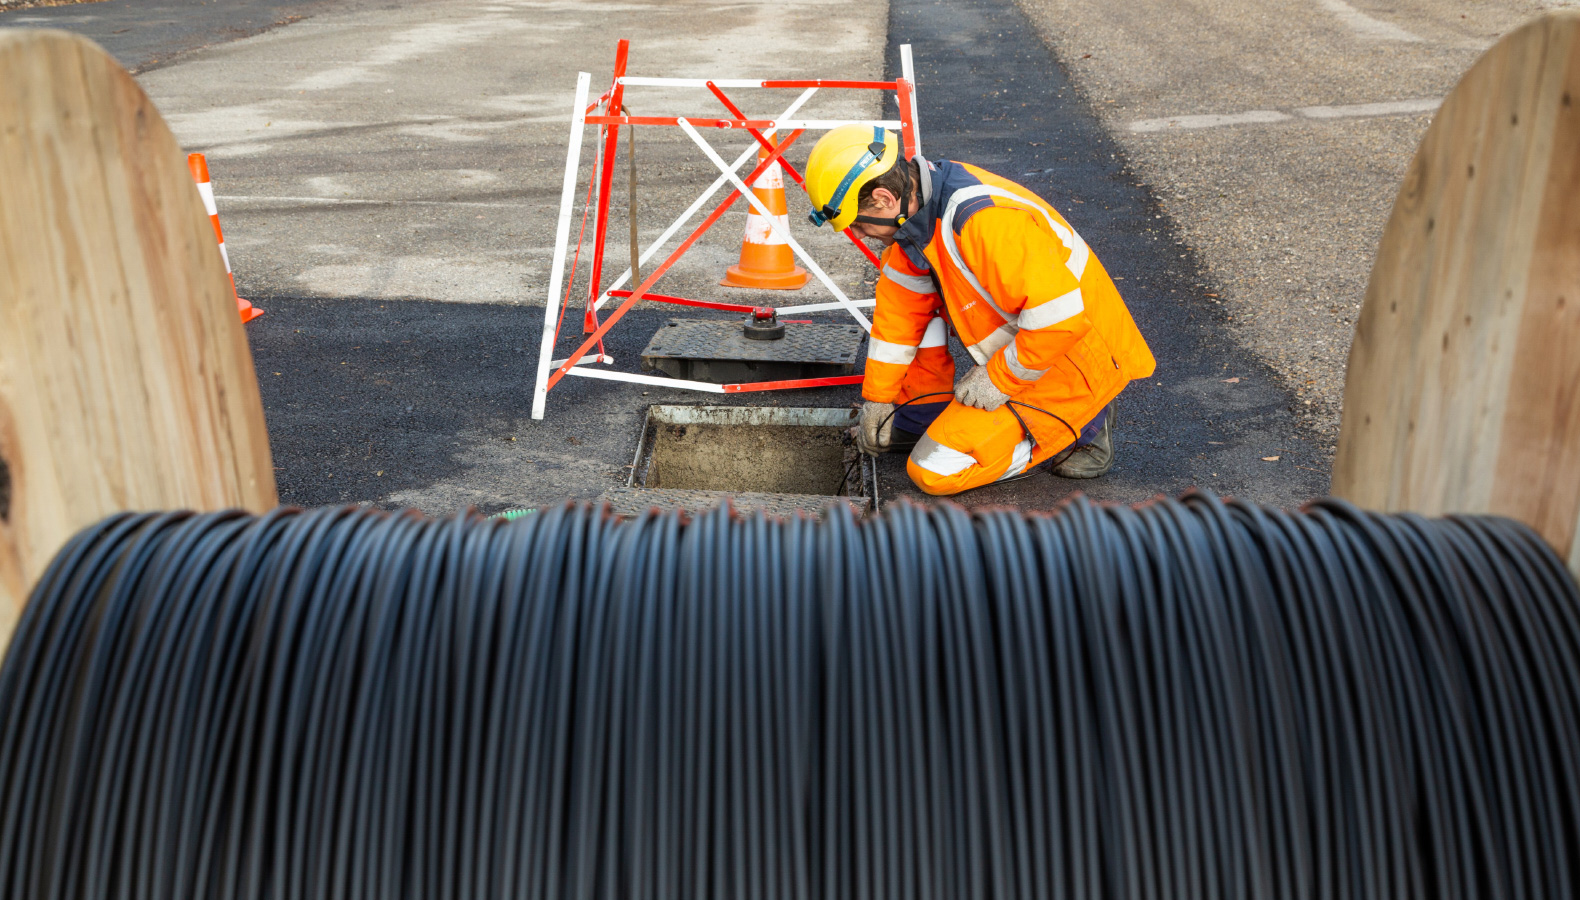 Cable obstructing worker at a manhole